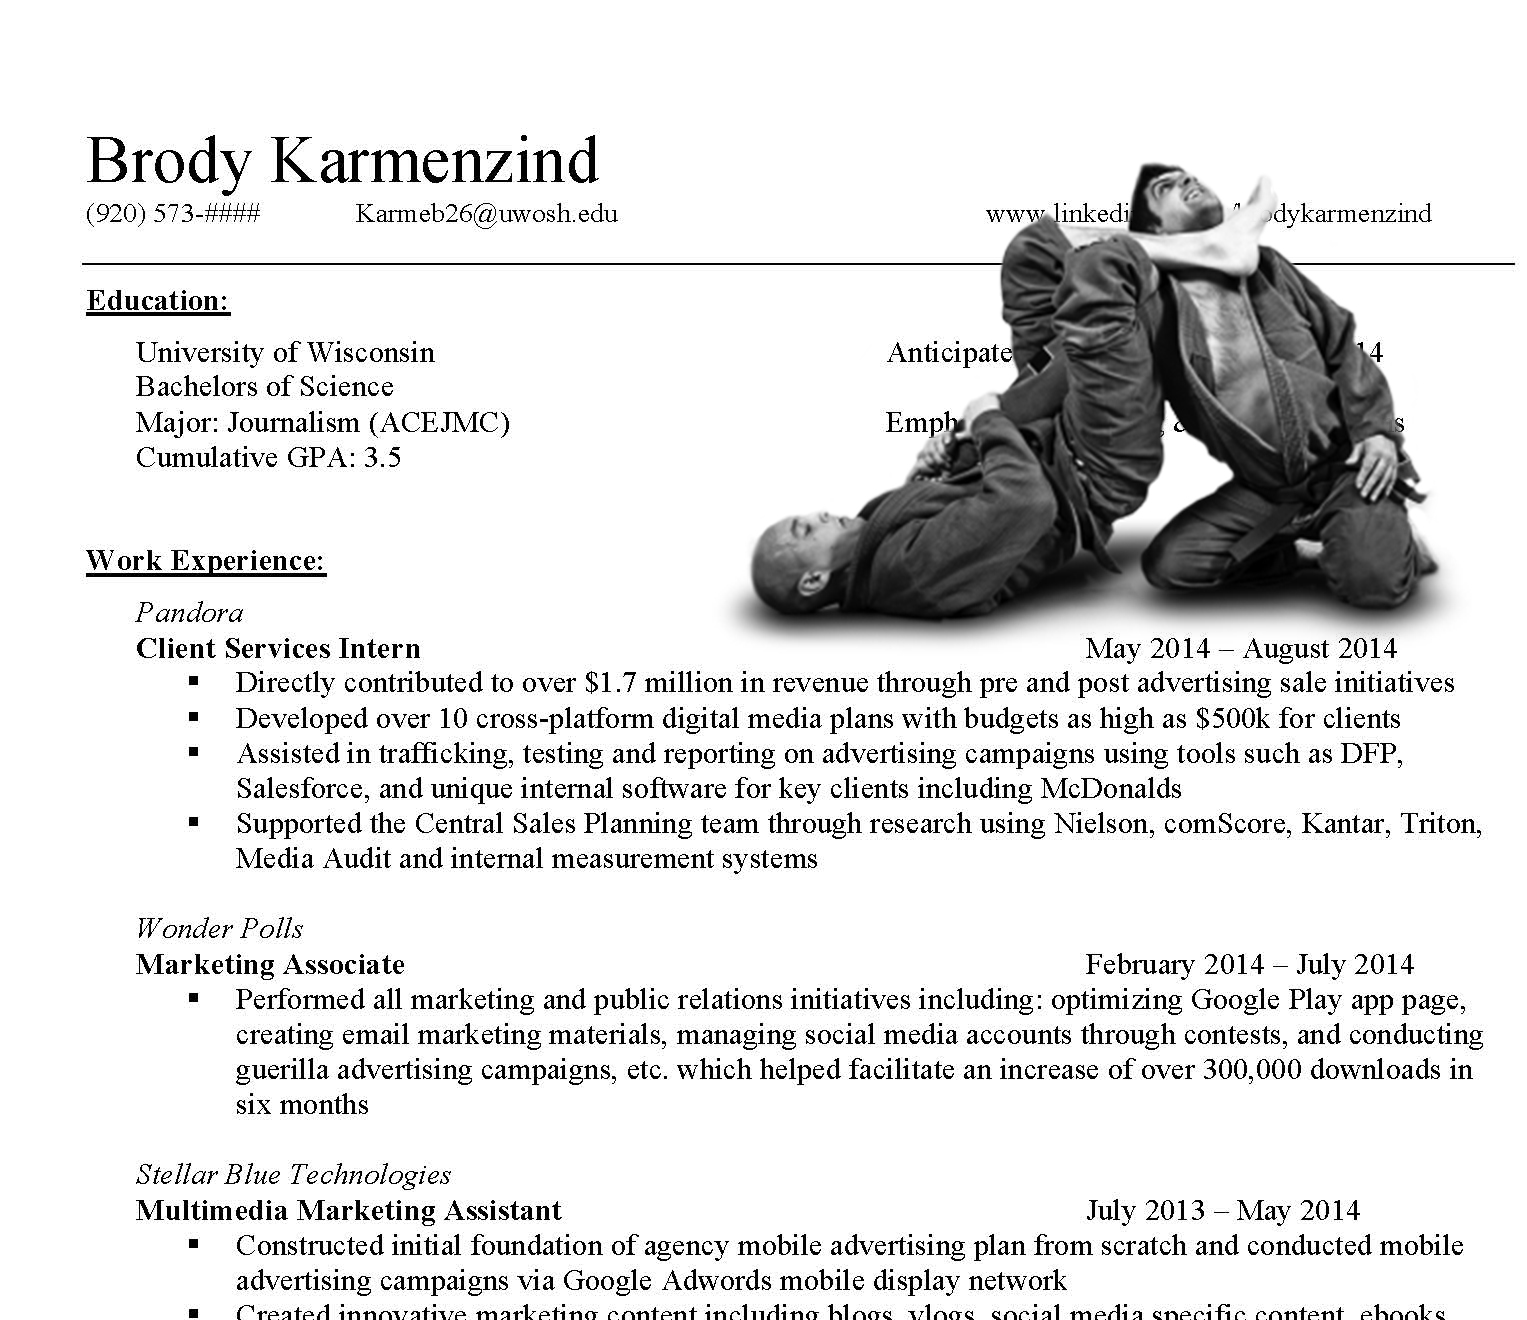 Captivating BJJ RESUME Pertaining To Updating My Resume